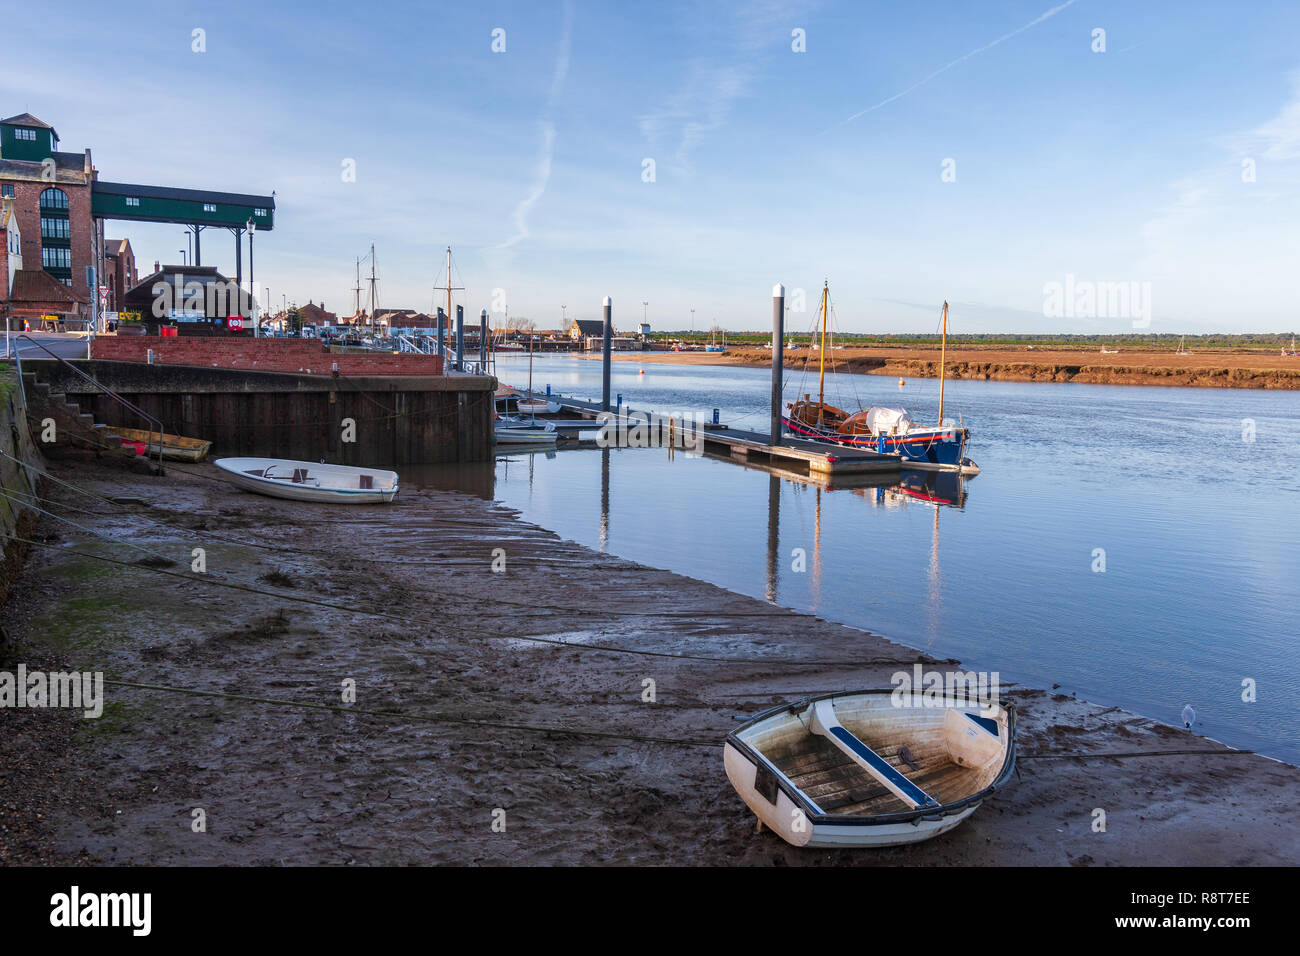 wells horbour on the north norfolk coast - Stock Image